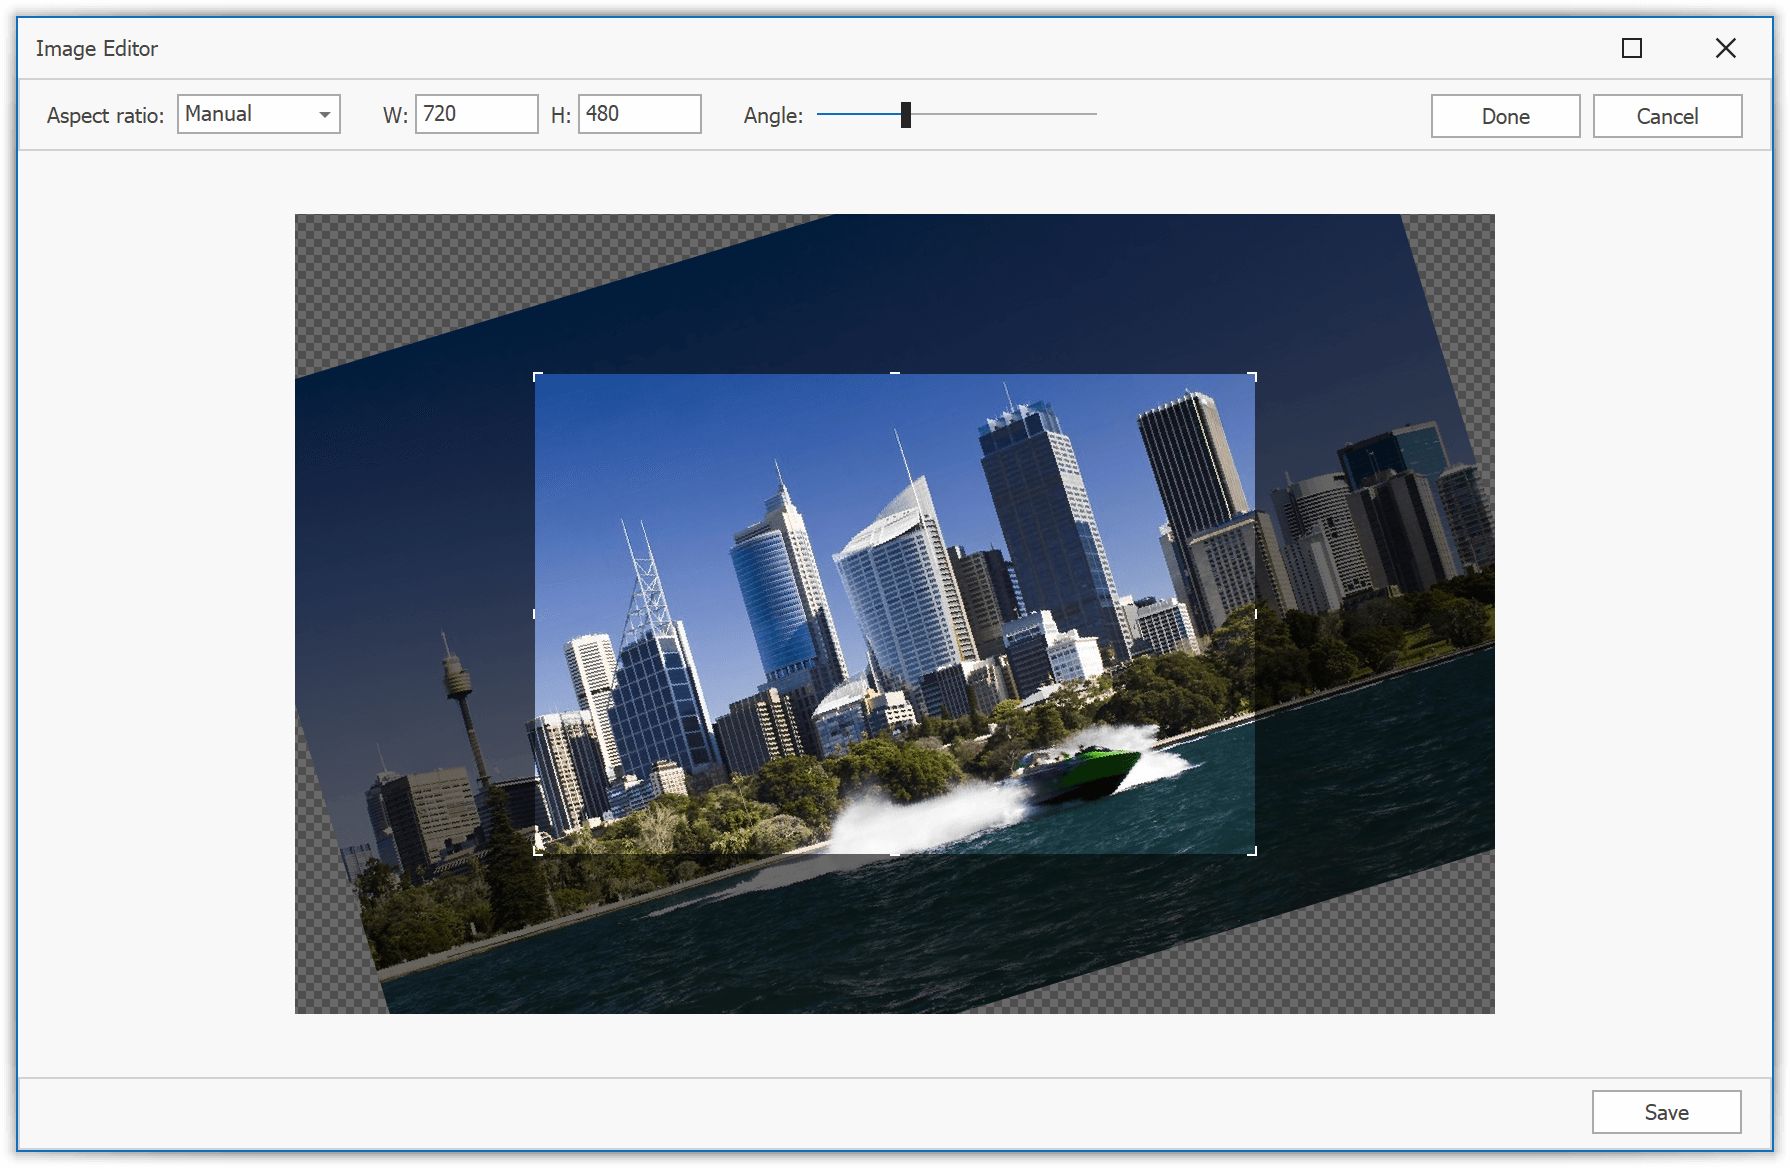 PictureEdit - Image Editor Dialog, WinForms Data Editors | DevExpress